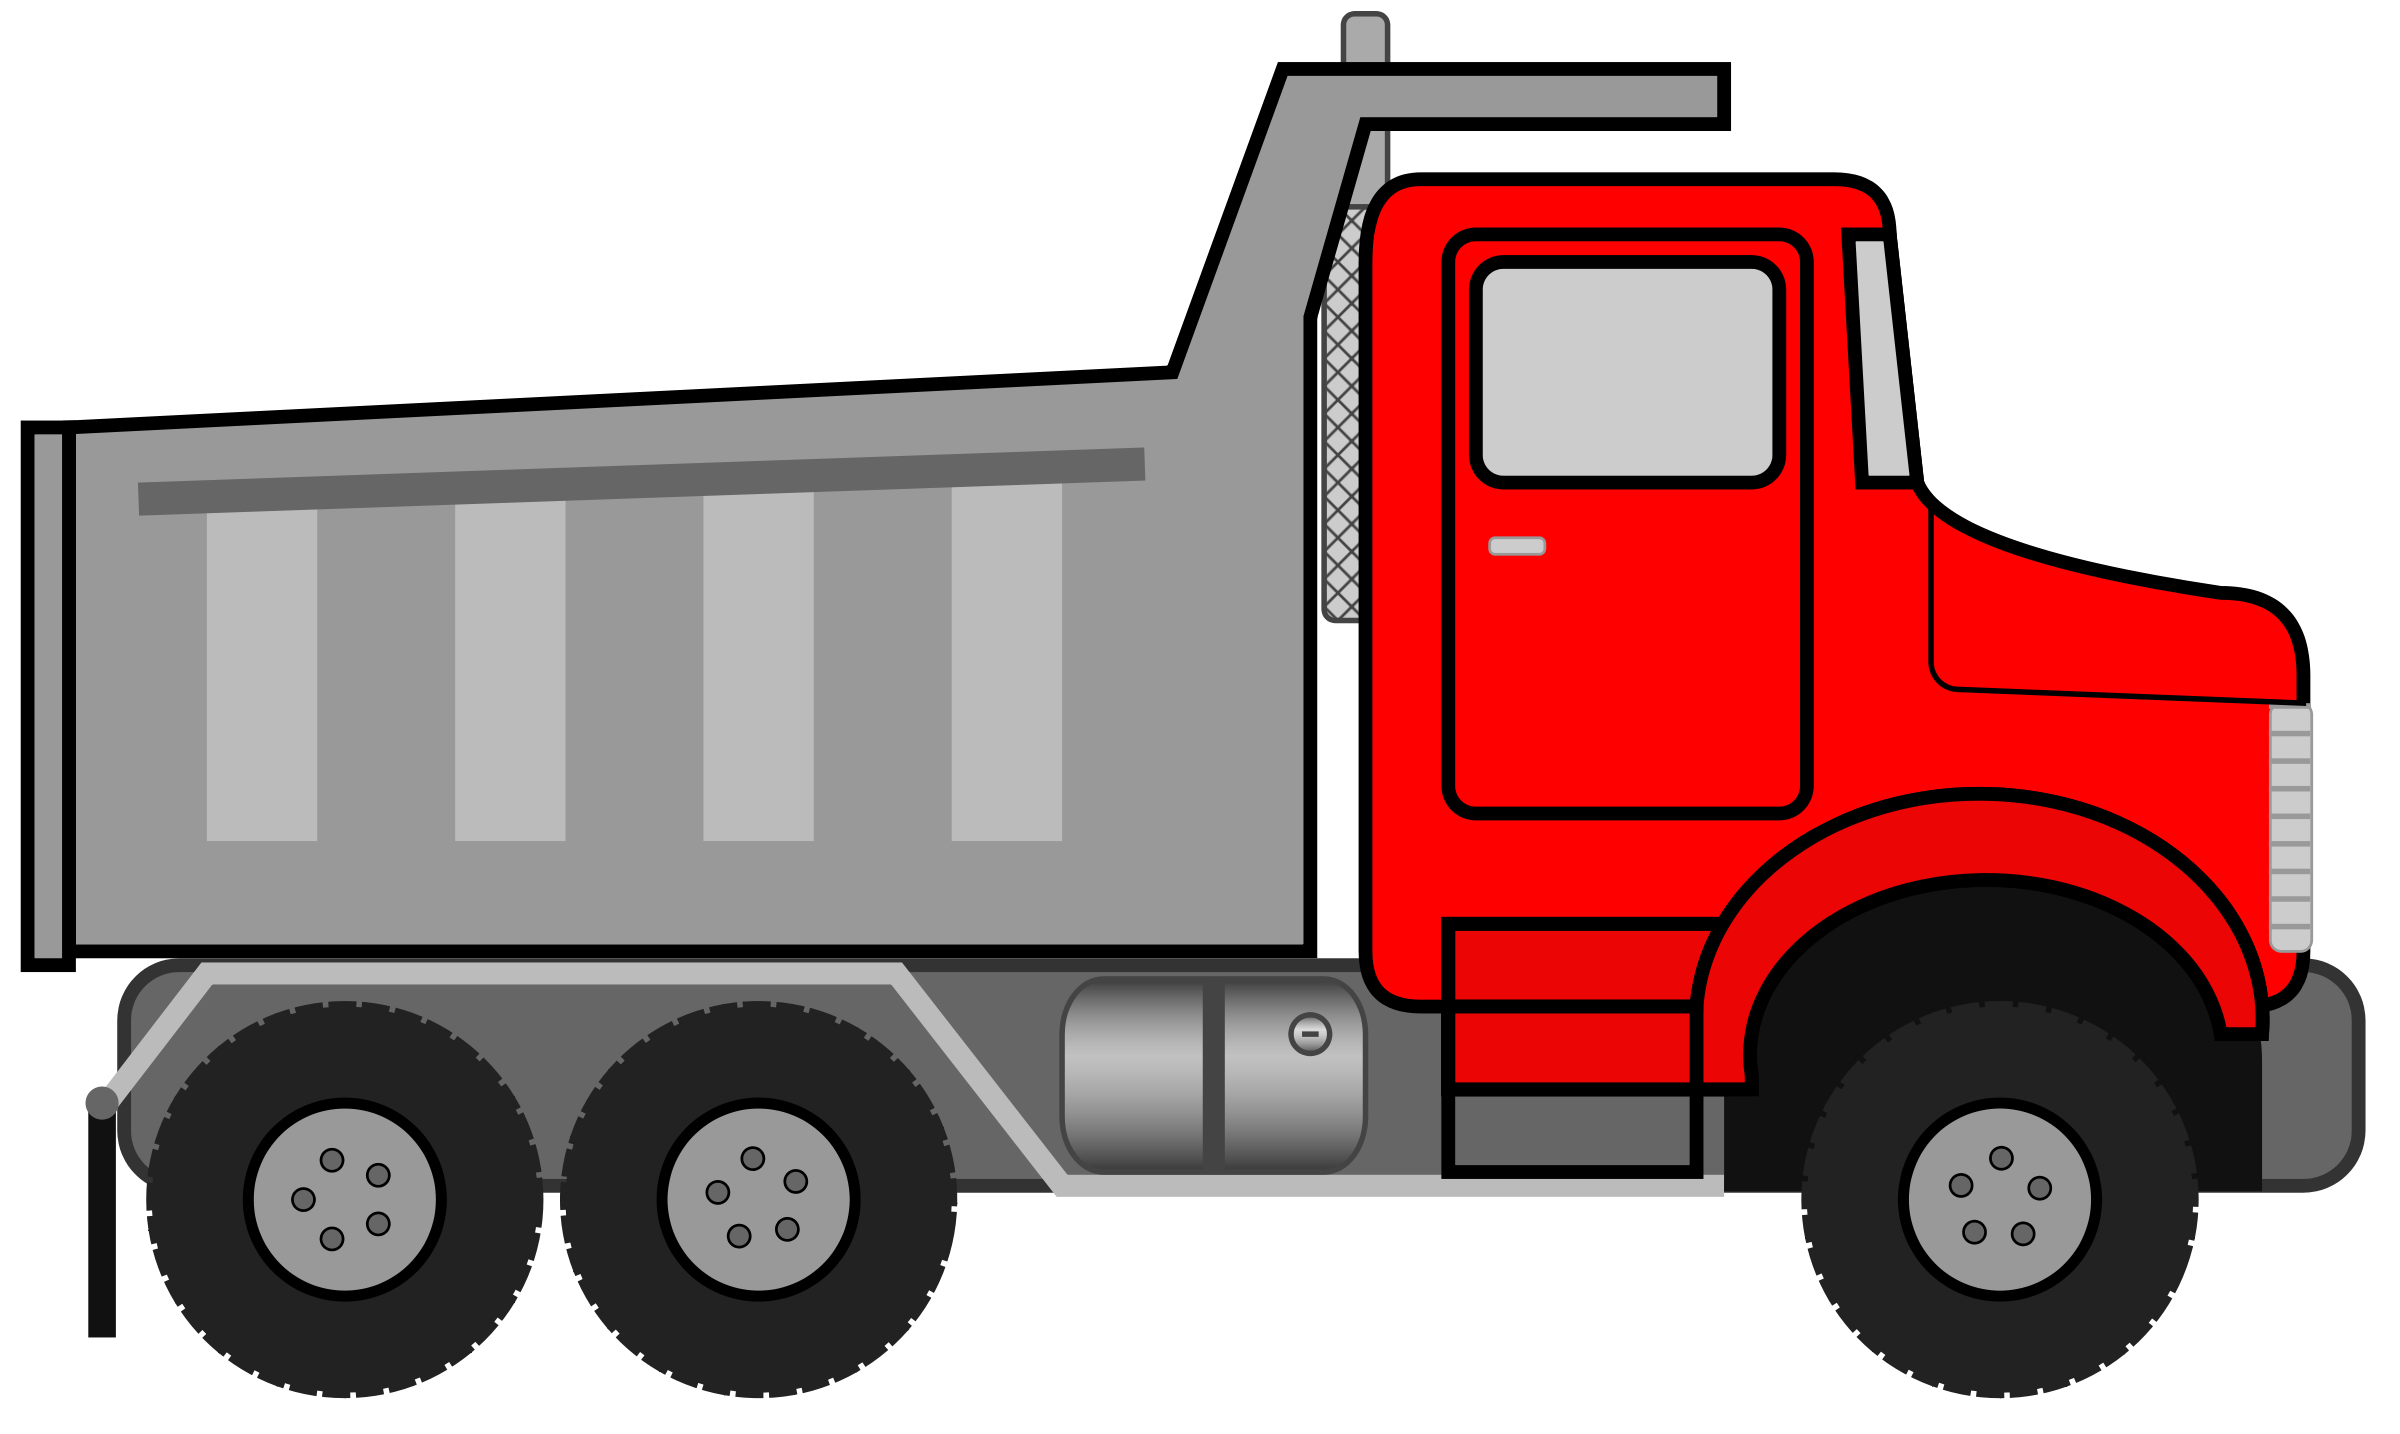 2400x1434 Truck Black And White Fire Truck Clipart Black And White Free 4 2